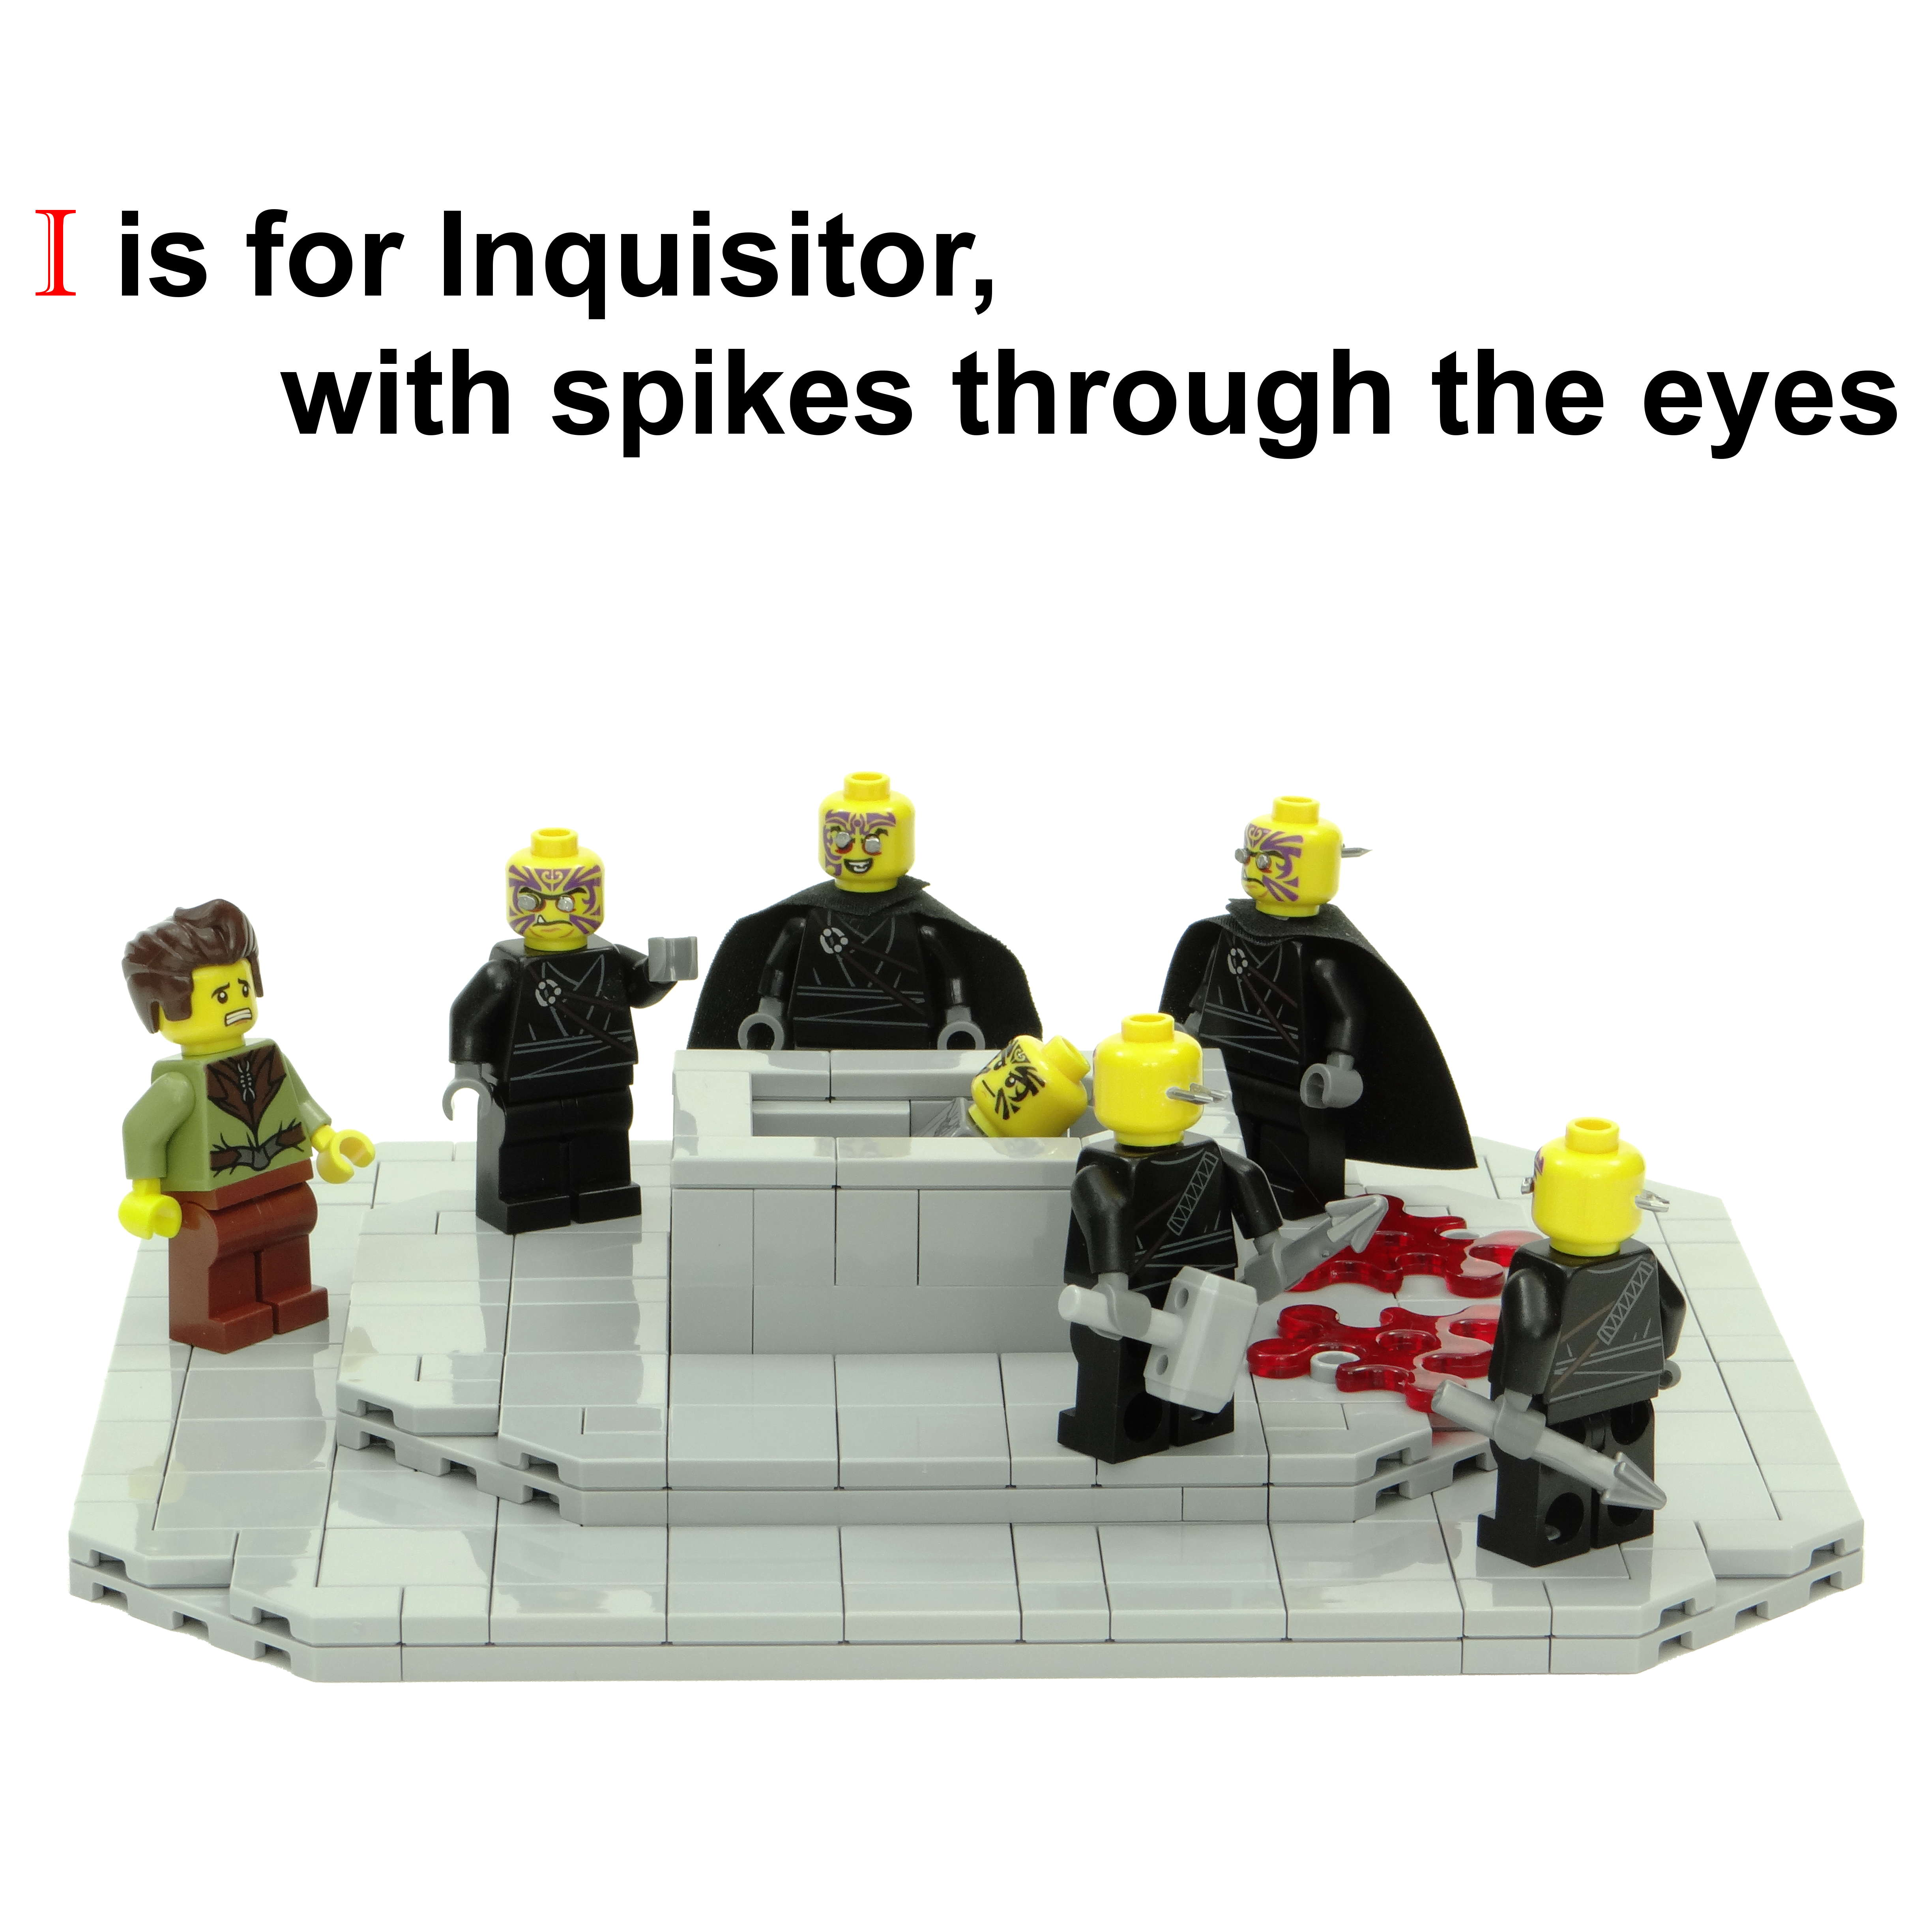 I-is-for-Inquisitor